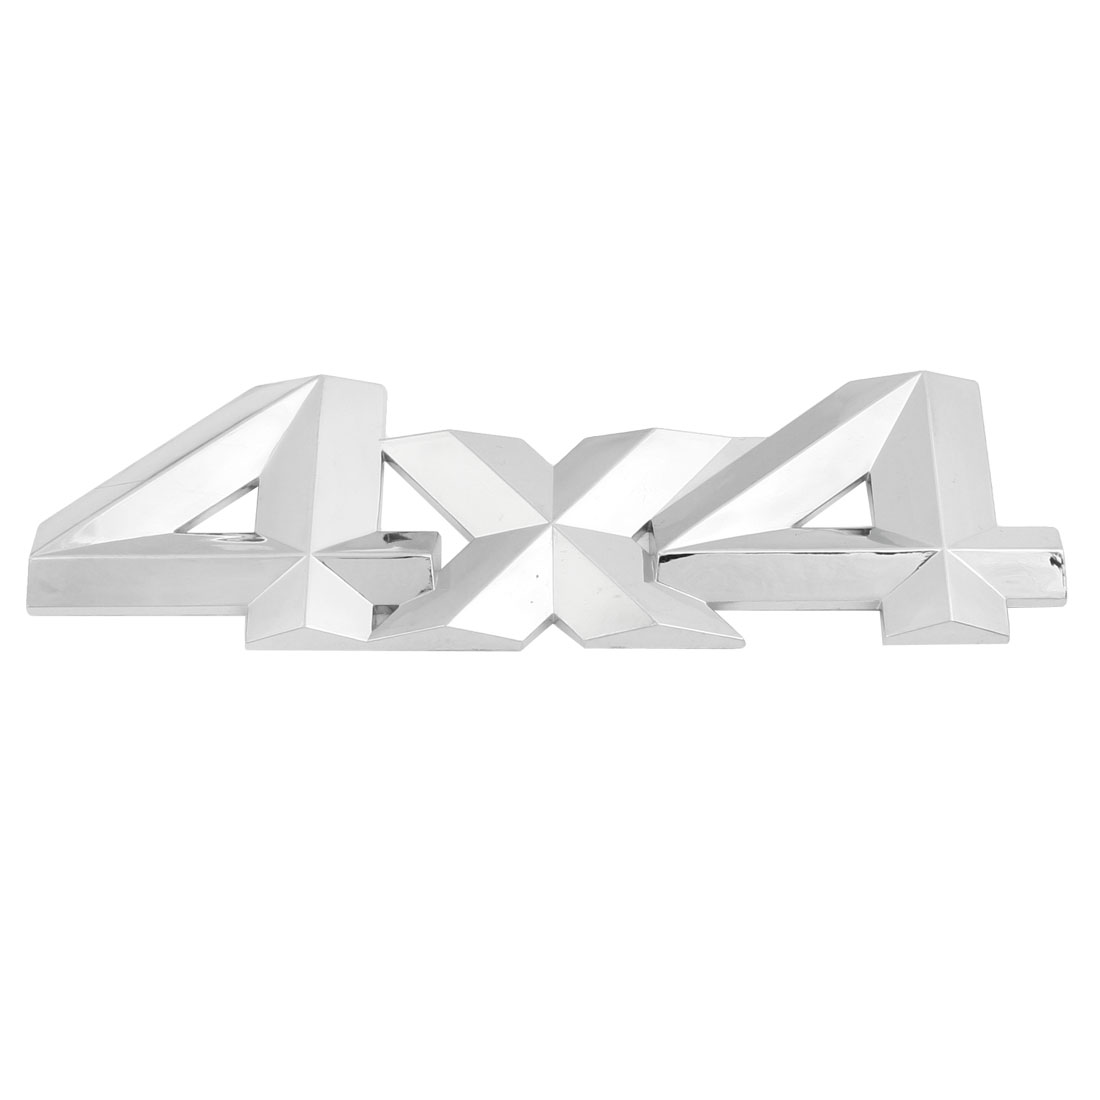 Silver Tone Plastic 4x4 Pattern Car Badge Sticker Emblem Decor